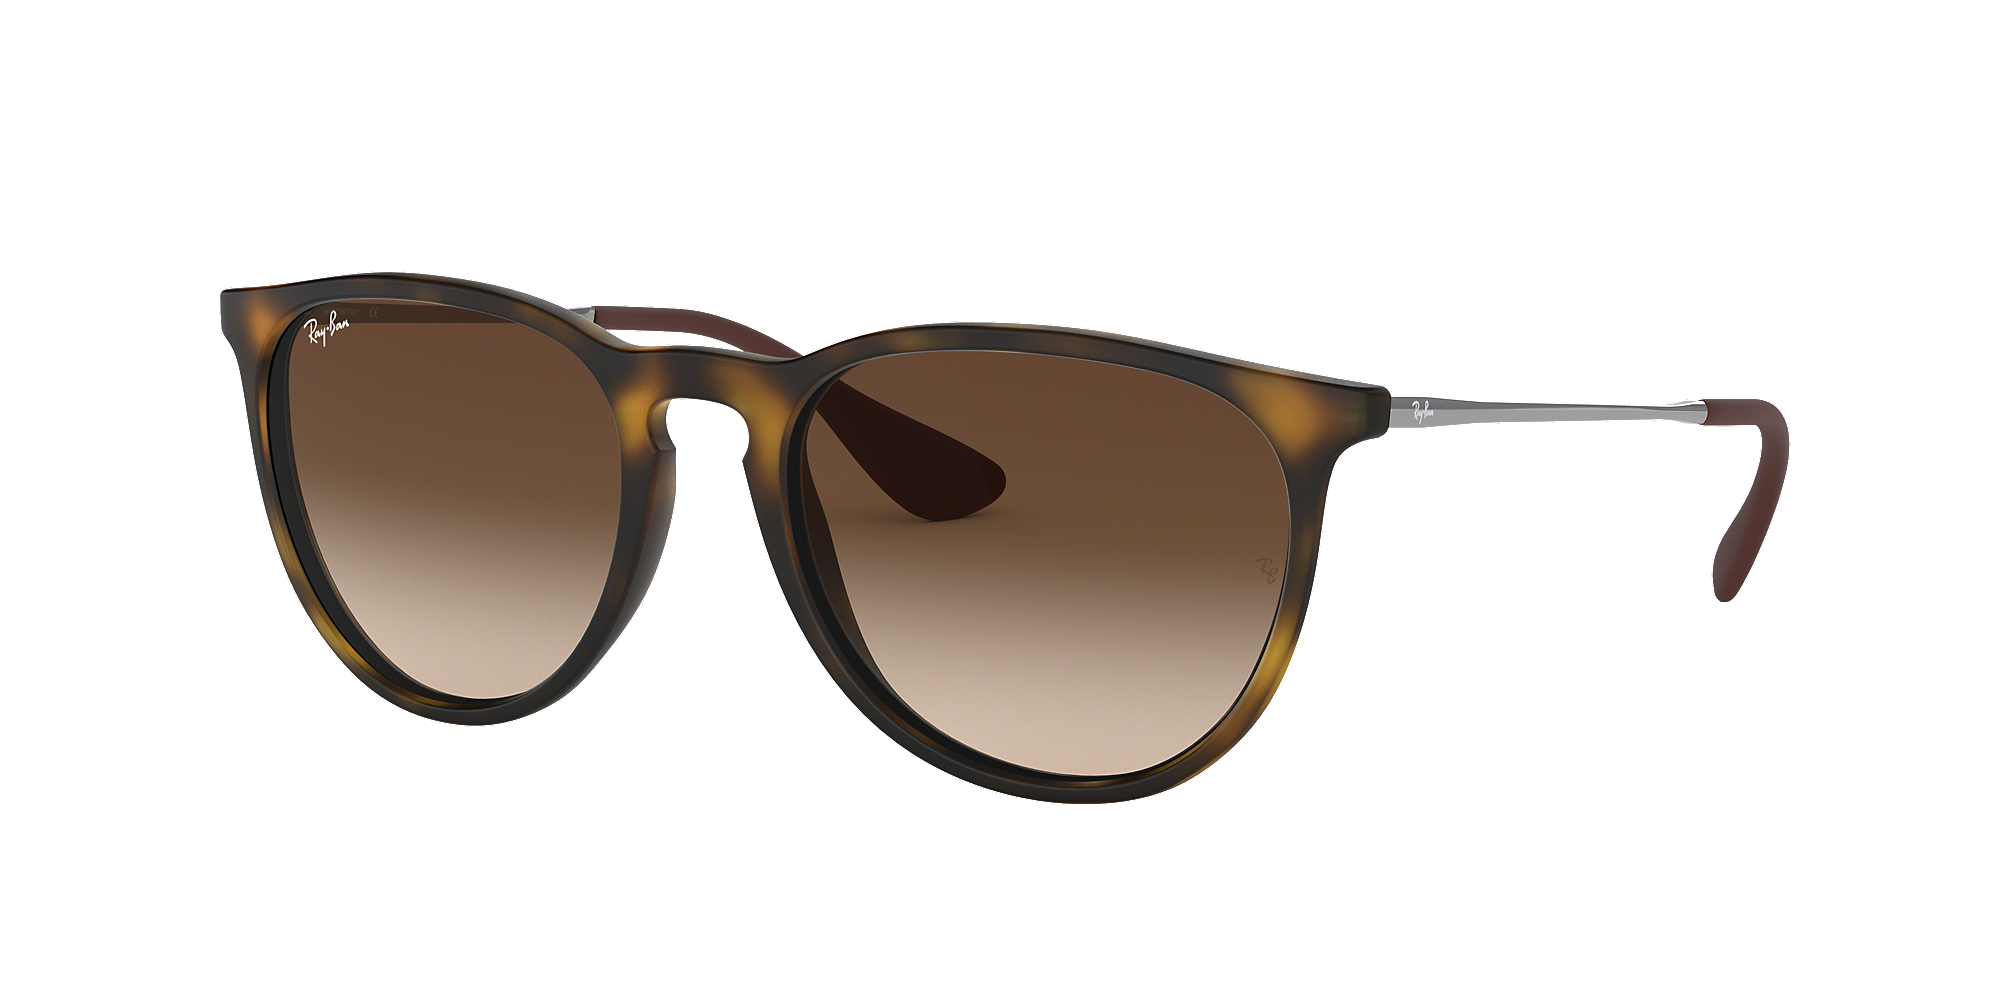 rb4171 qrwl  RAY-BAN RB4171 ERIKA SUNGLASSES